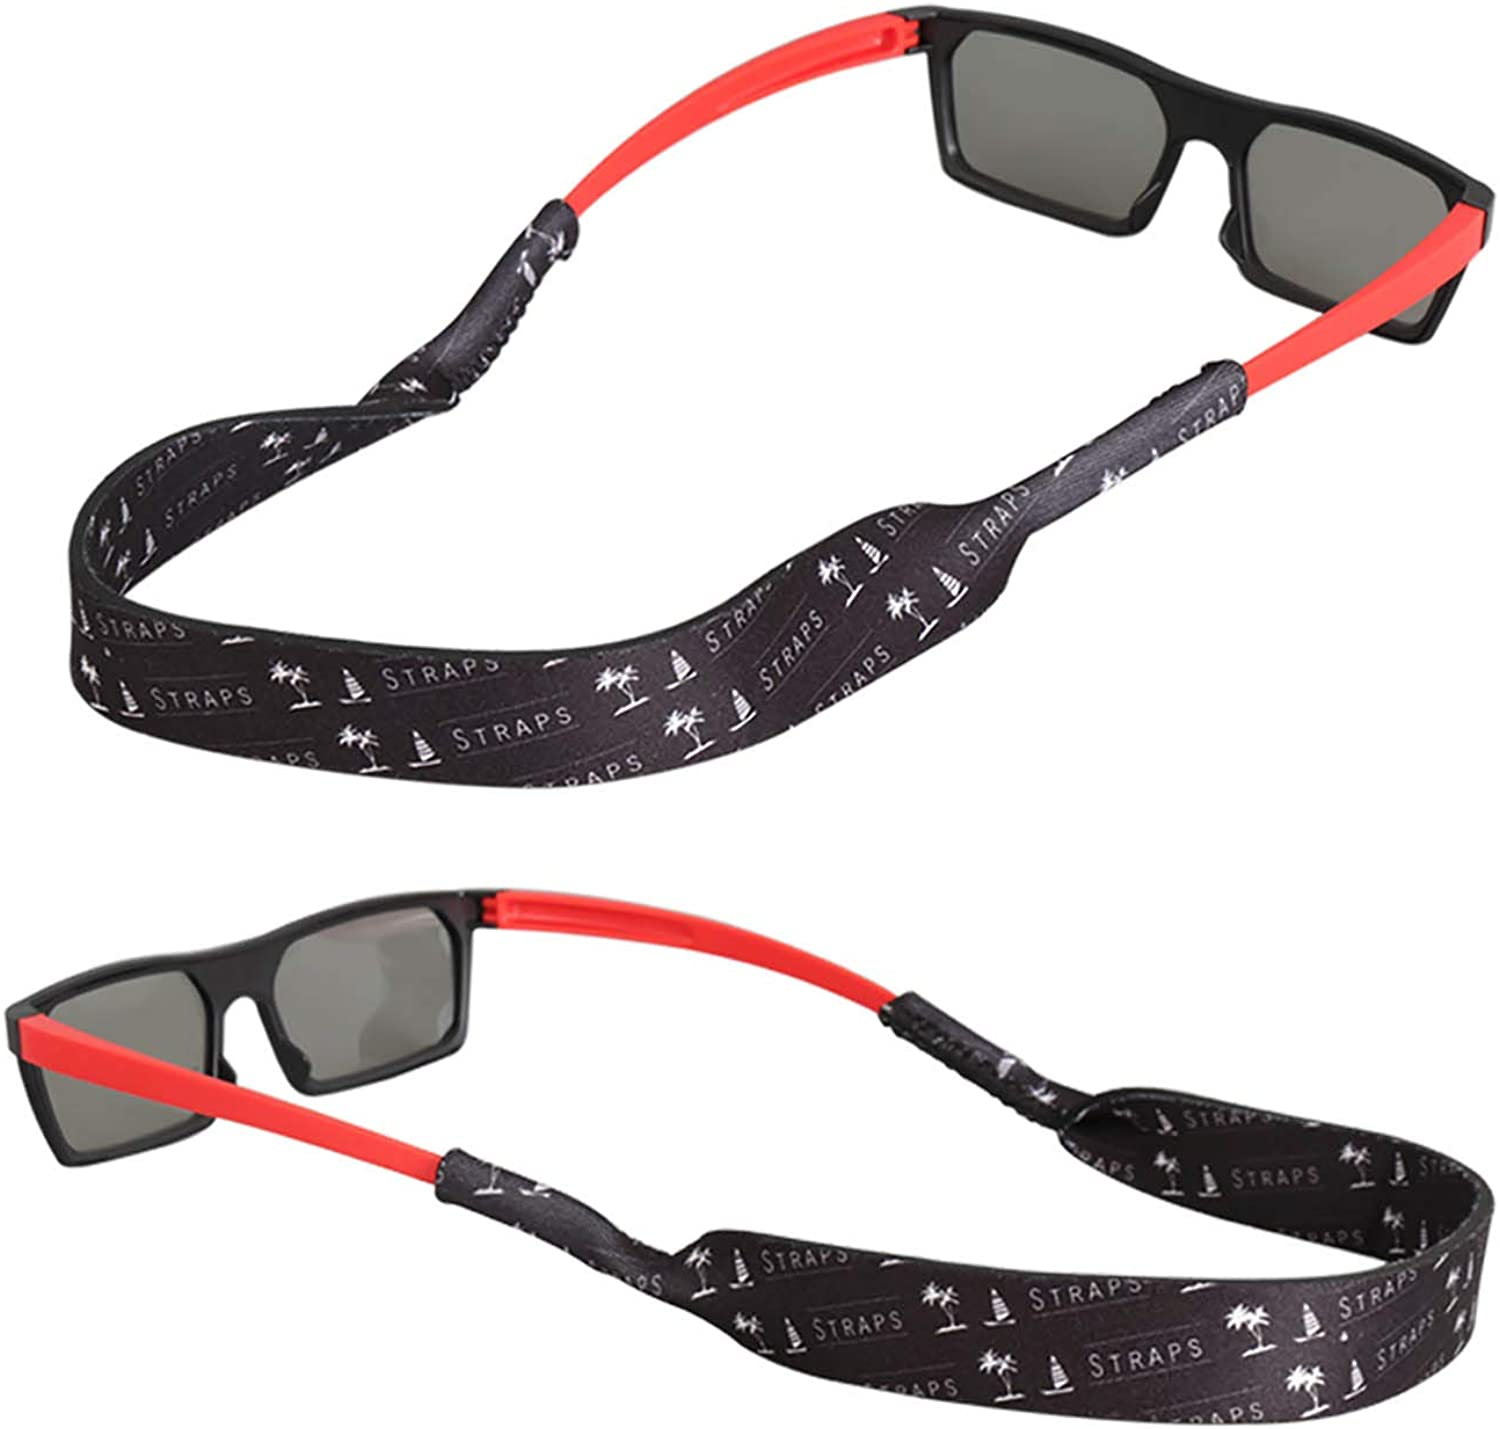 Fishing Custom Design for All Water Sports 2PCS FTALGS Original Cotton Standard End Eyewear Retainer, Sunglass Holder Strap Rock climbing Hiking etc. A. Eye of charm Biking